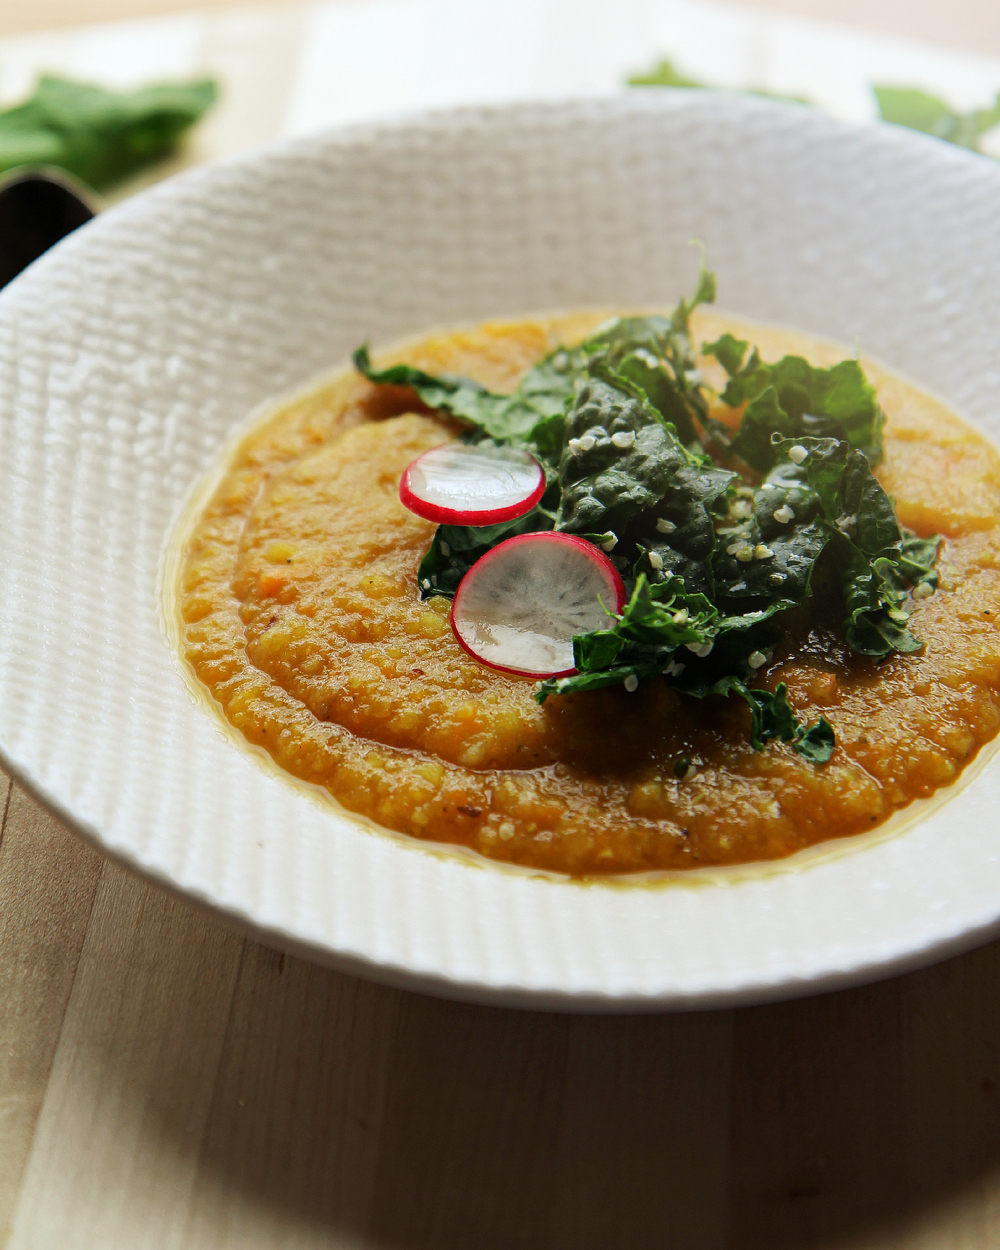 ©Roasted Carrot & Potato Soup with Kale Salad by Dena T Bray